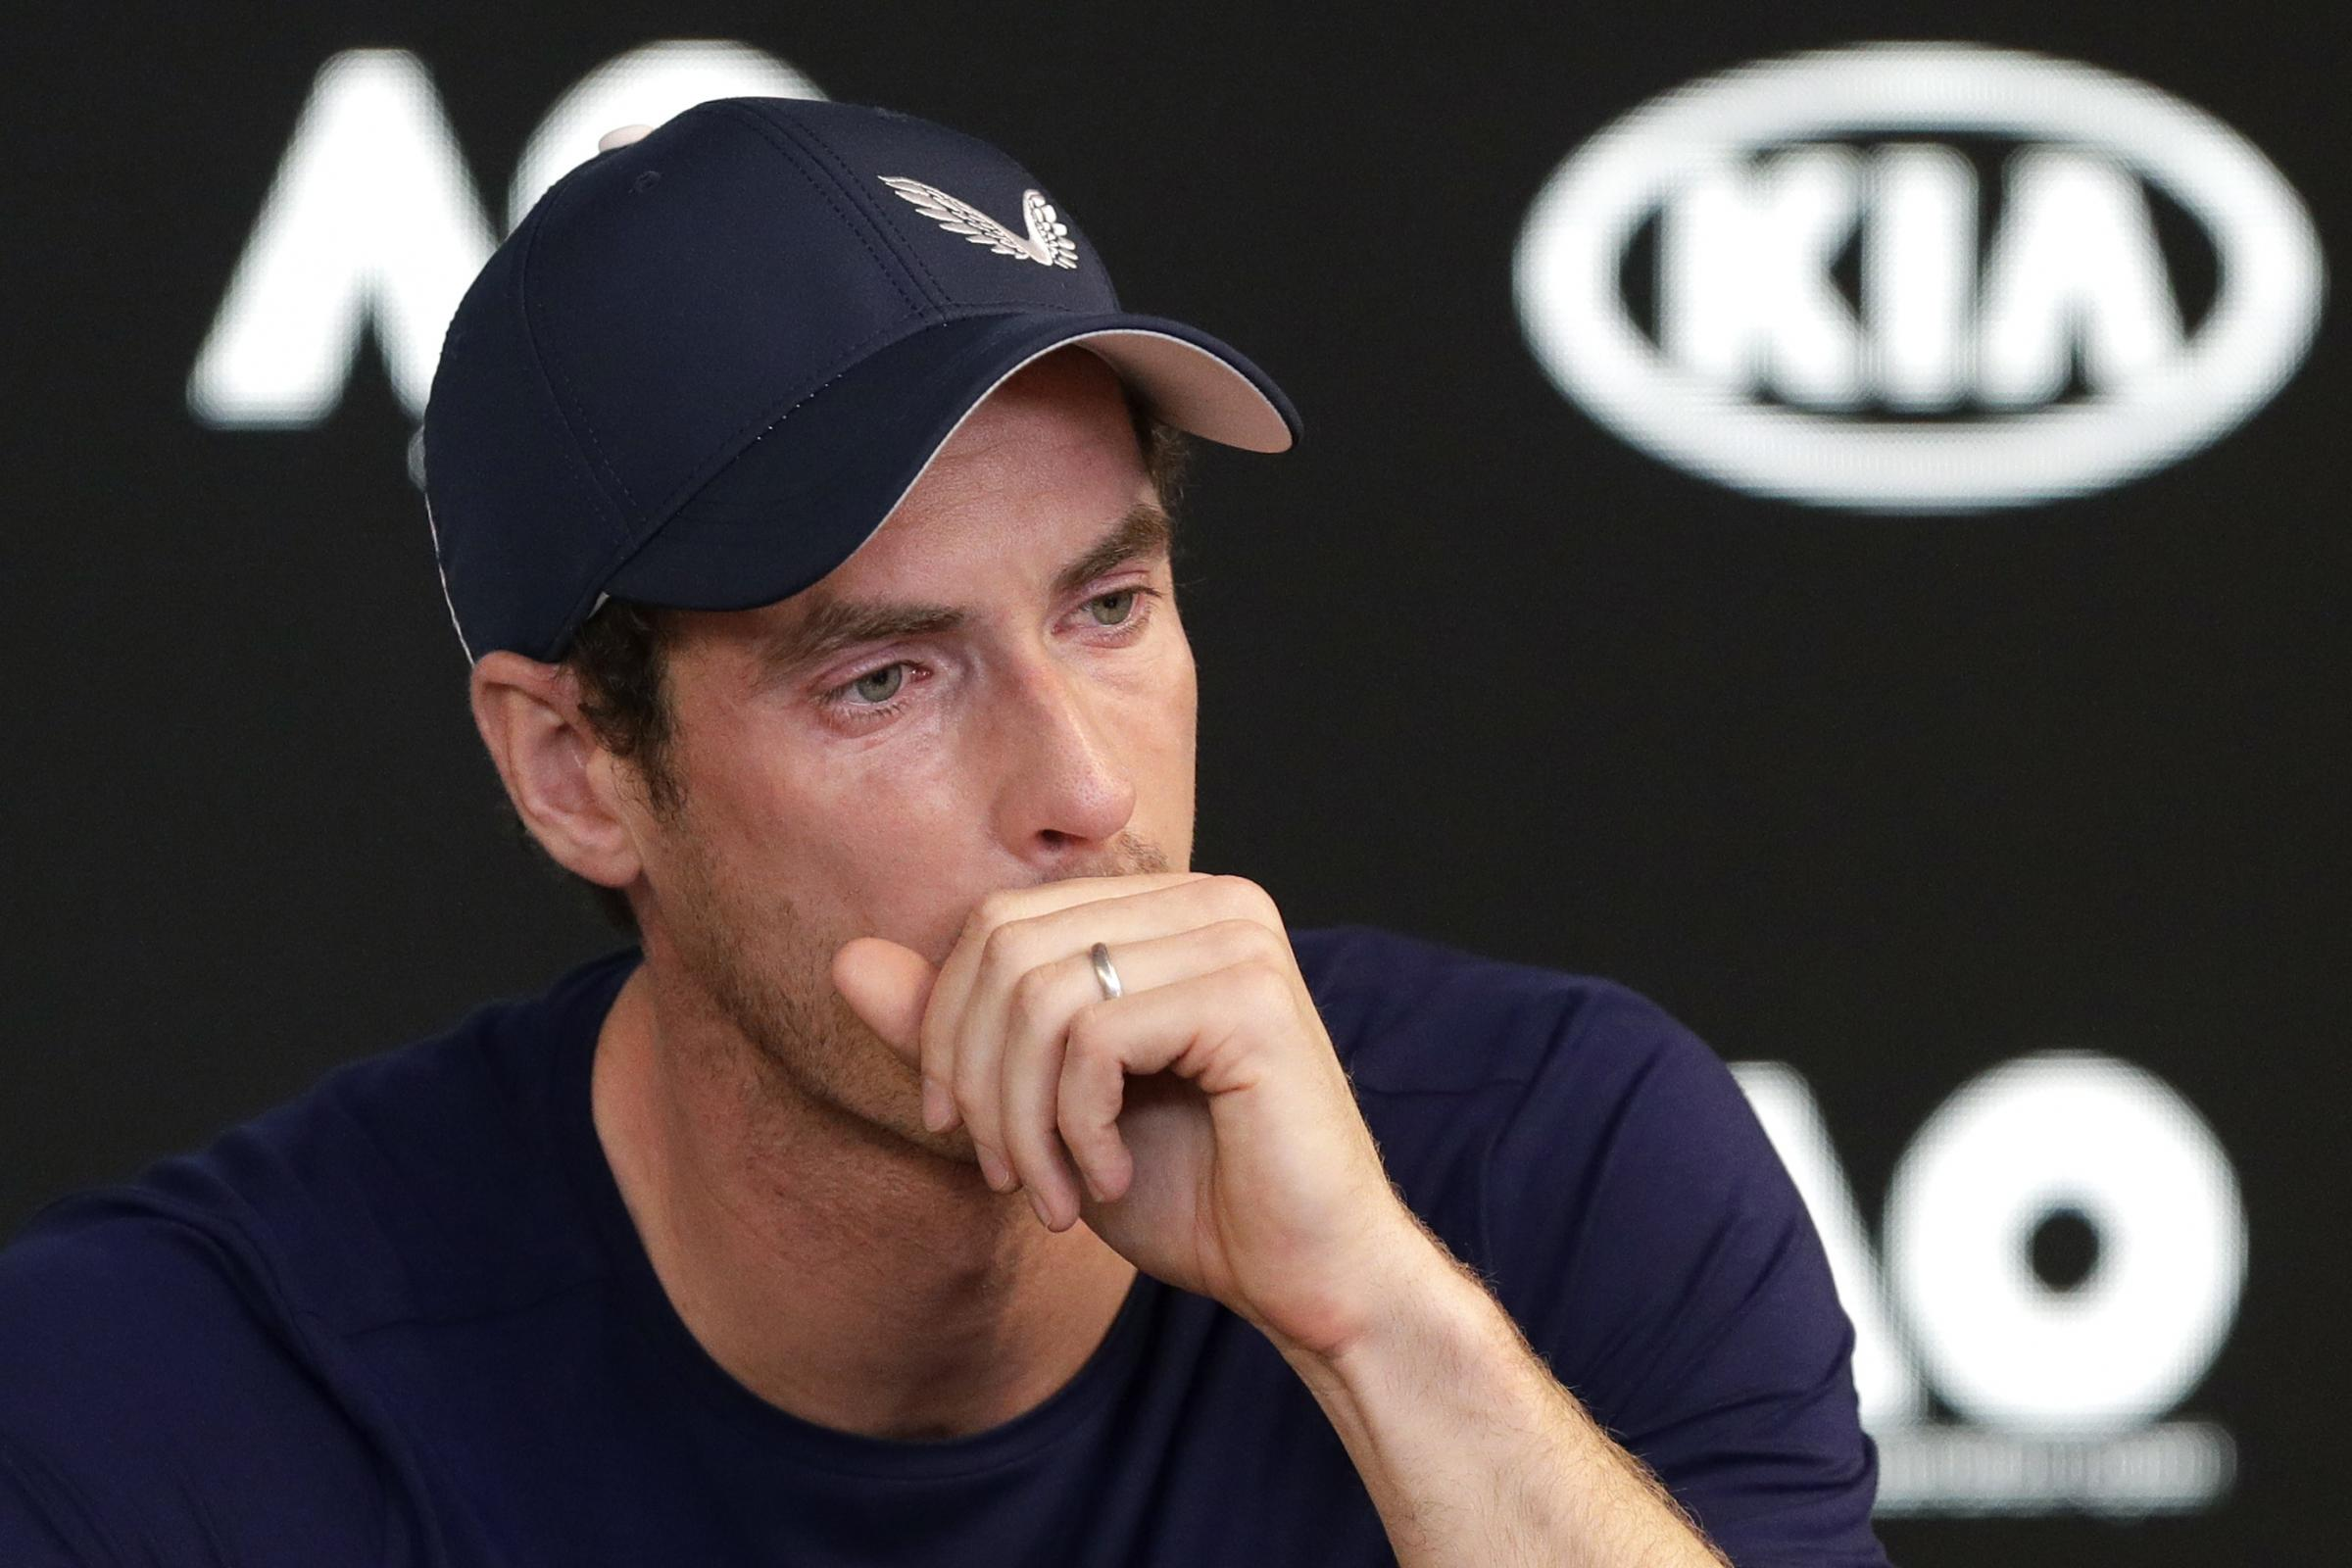 A tearful Andy Murray announced before the Australian Open that he was planning to retire because of hip pain